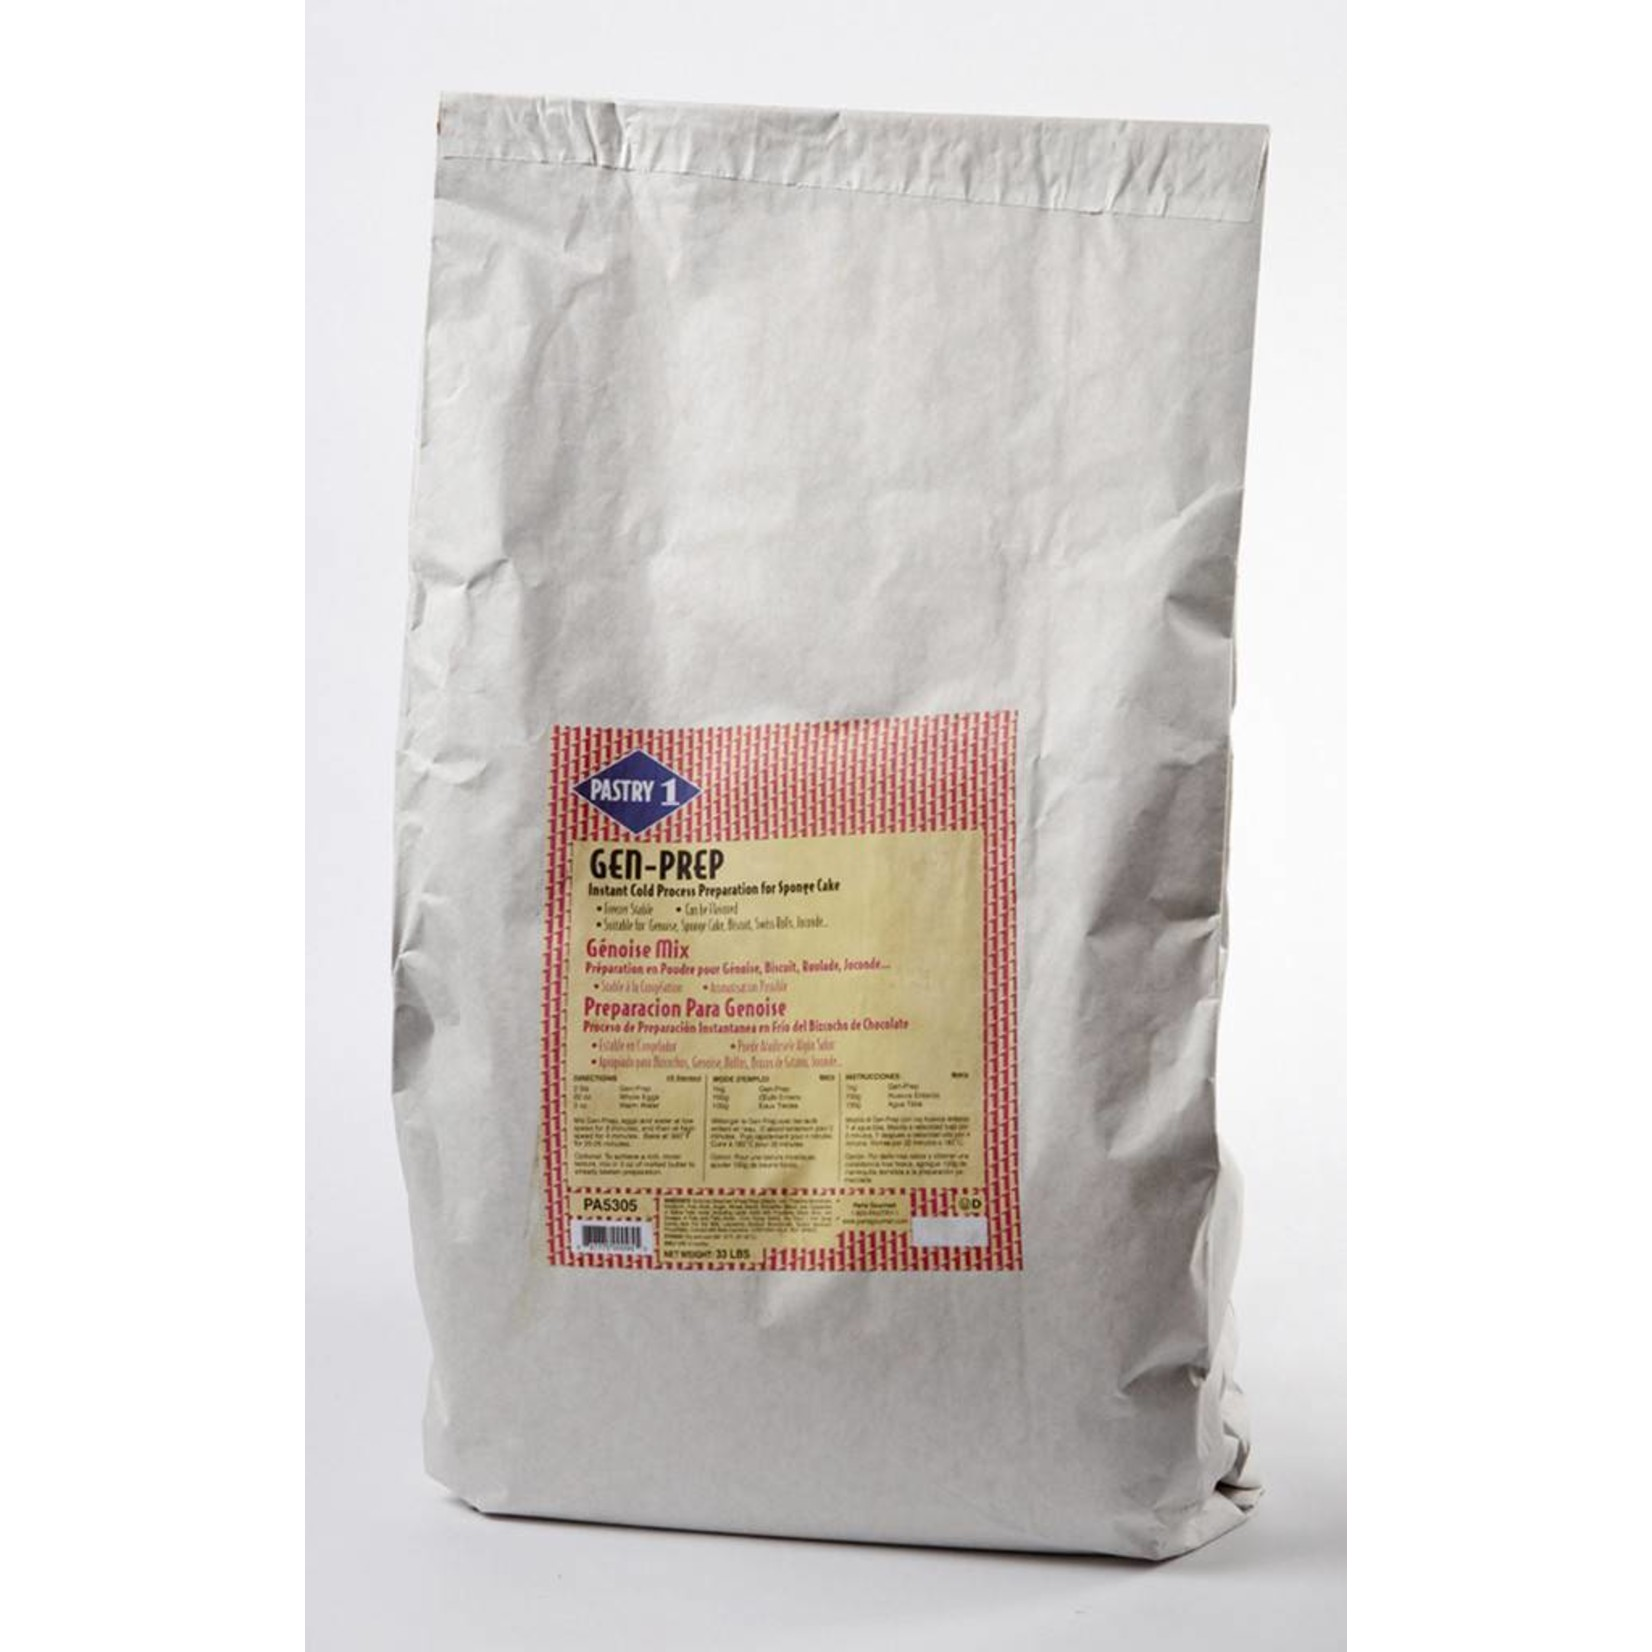 Pastry 1 Pastry 1 - Genoise cake mix - 33lb, PA5305